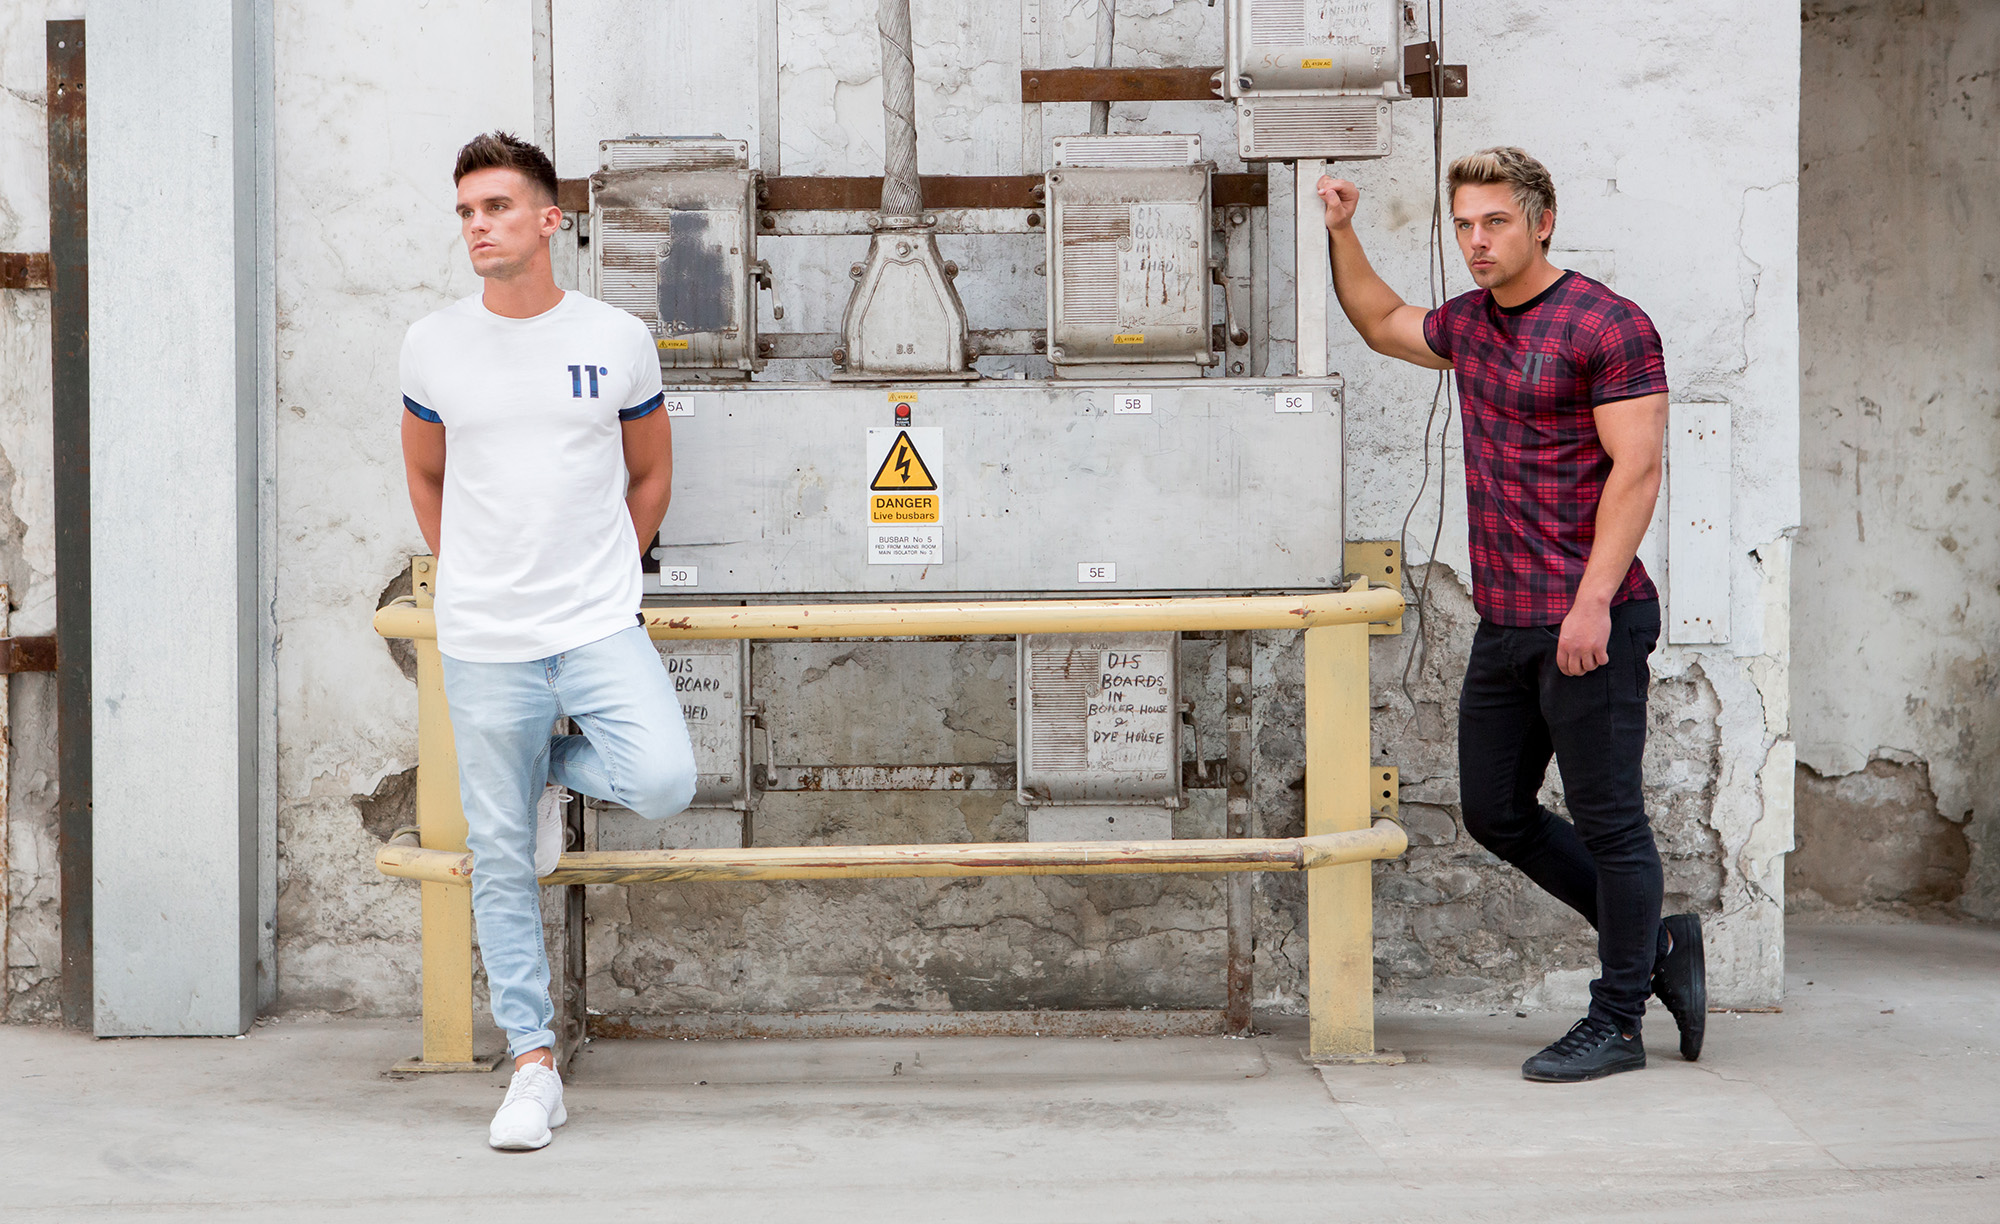 11 Degrees Clothing, Gary Beadle (@GazGShore) of Geordie Shore and Joss Mooney (@joss_mooney) of Ex on the Beach